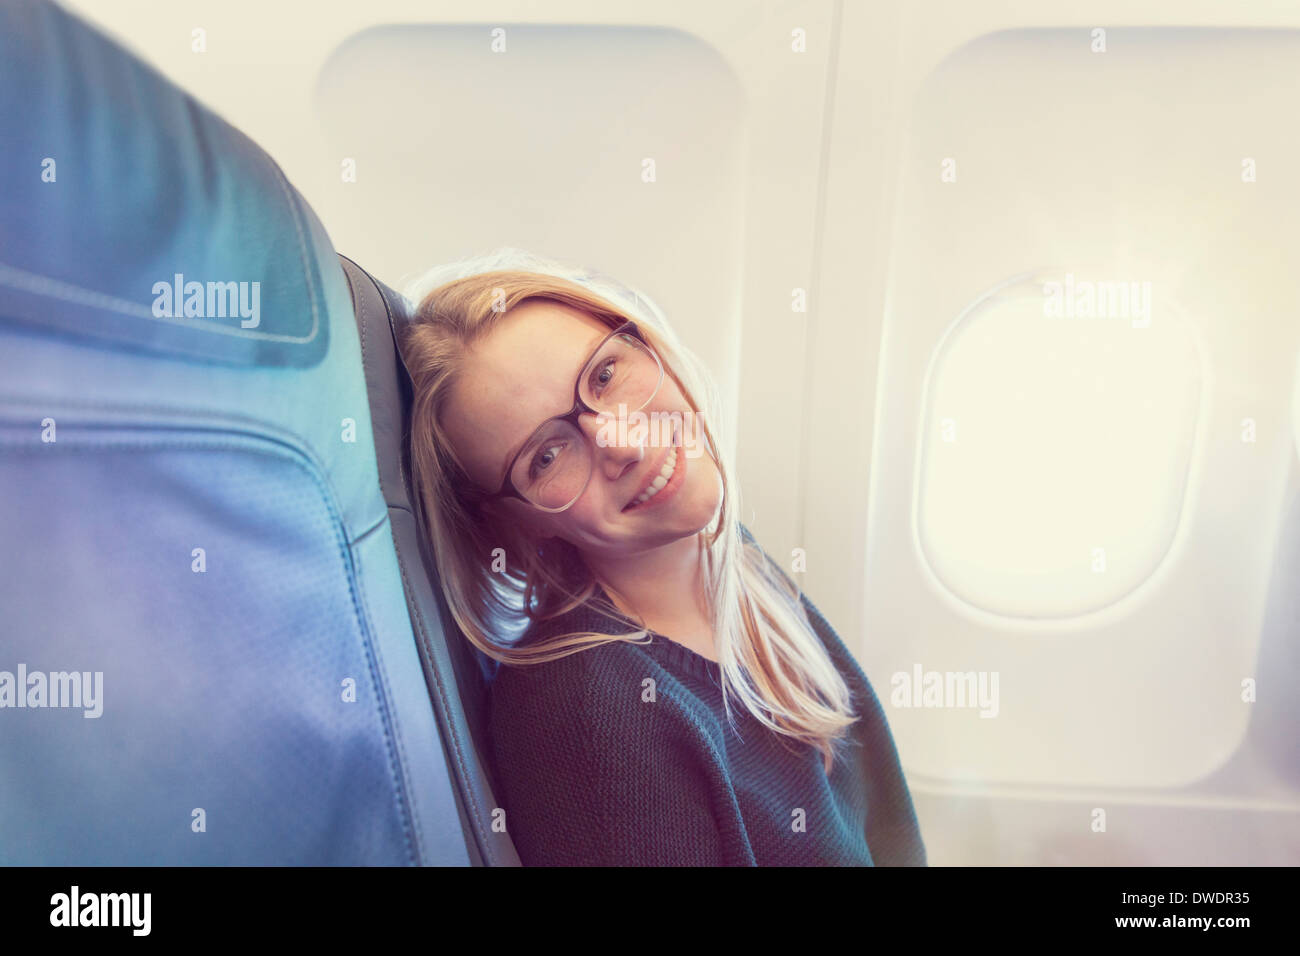 Smiling young woman in airplane, portrait - Stock Image